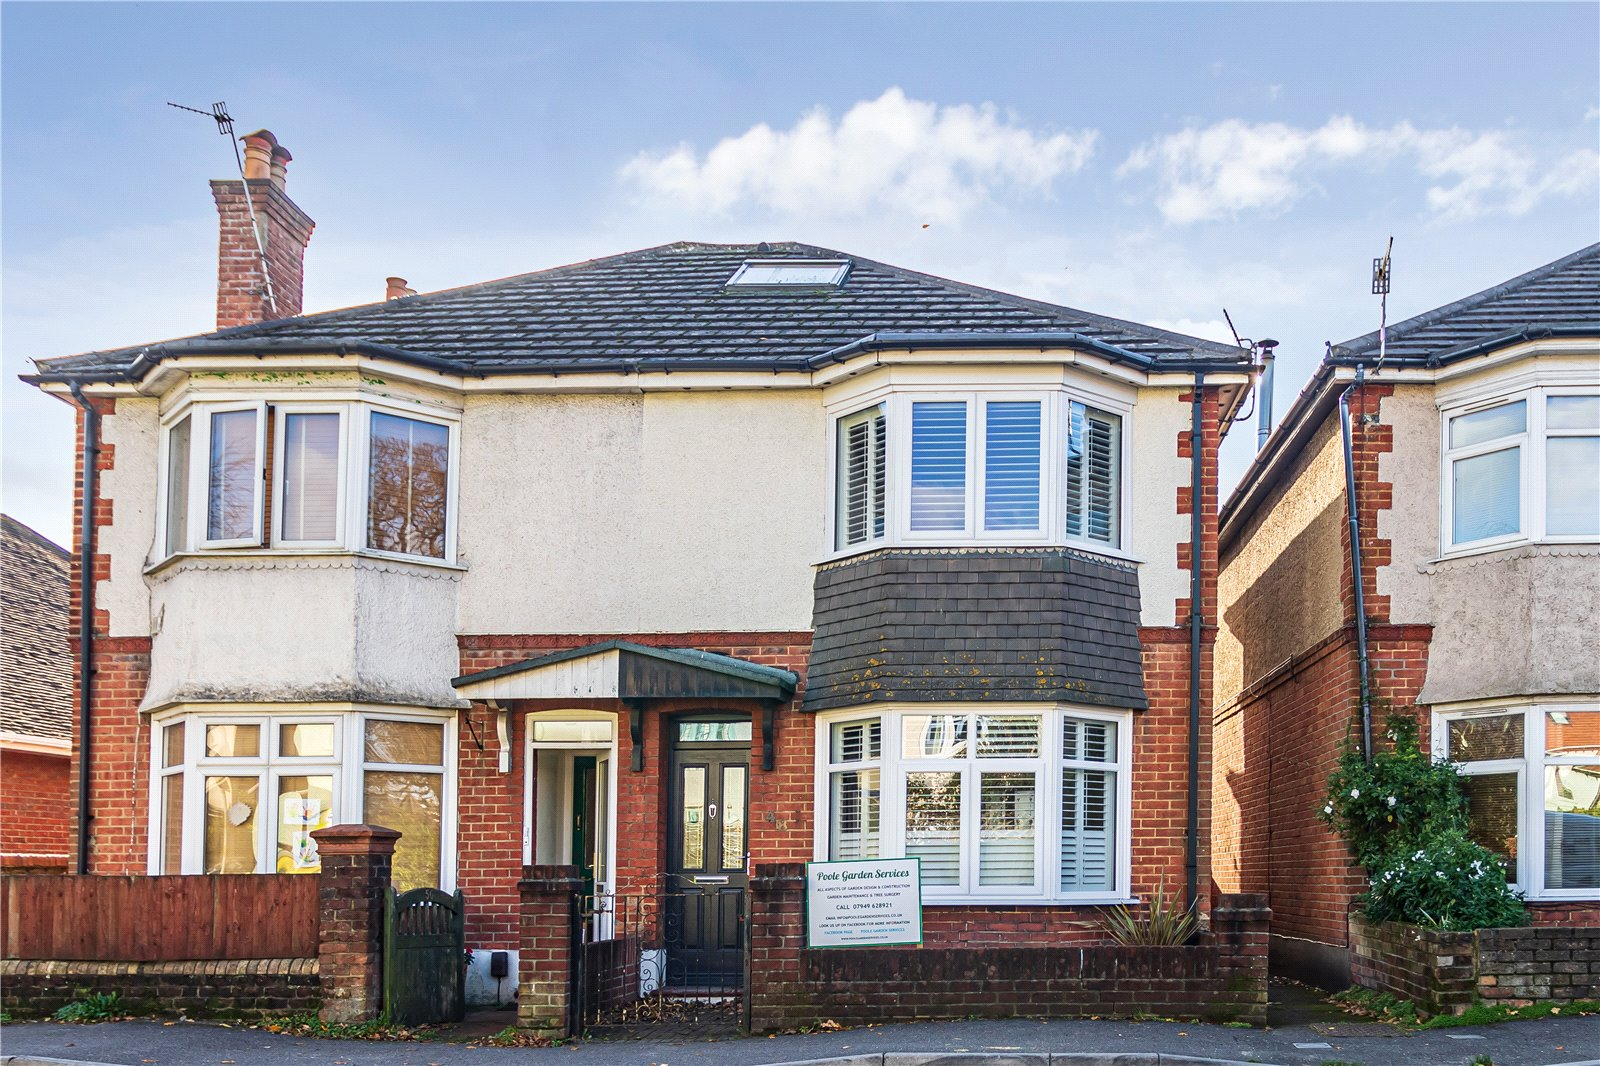 3 bed house for sale in Sandbanks Road, Whitecliff  - Property Image 1